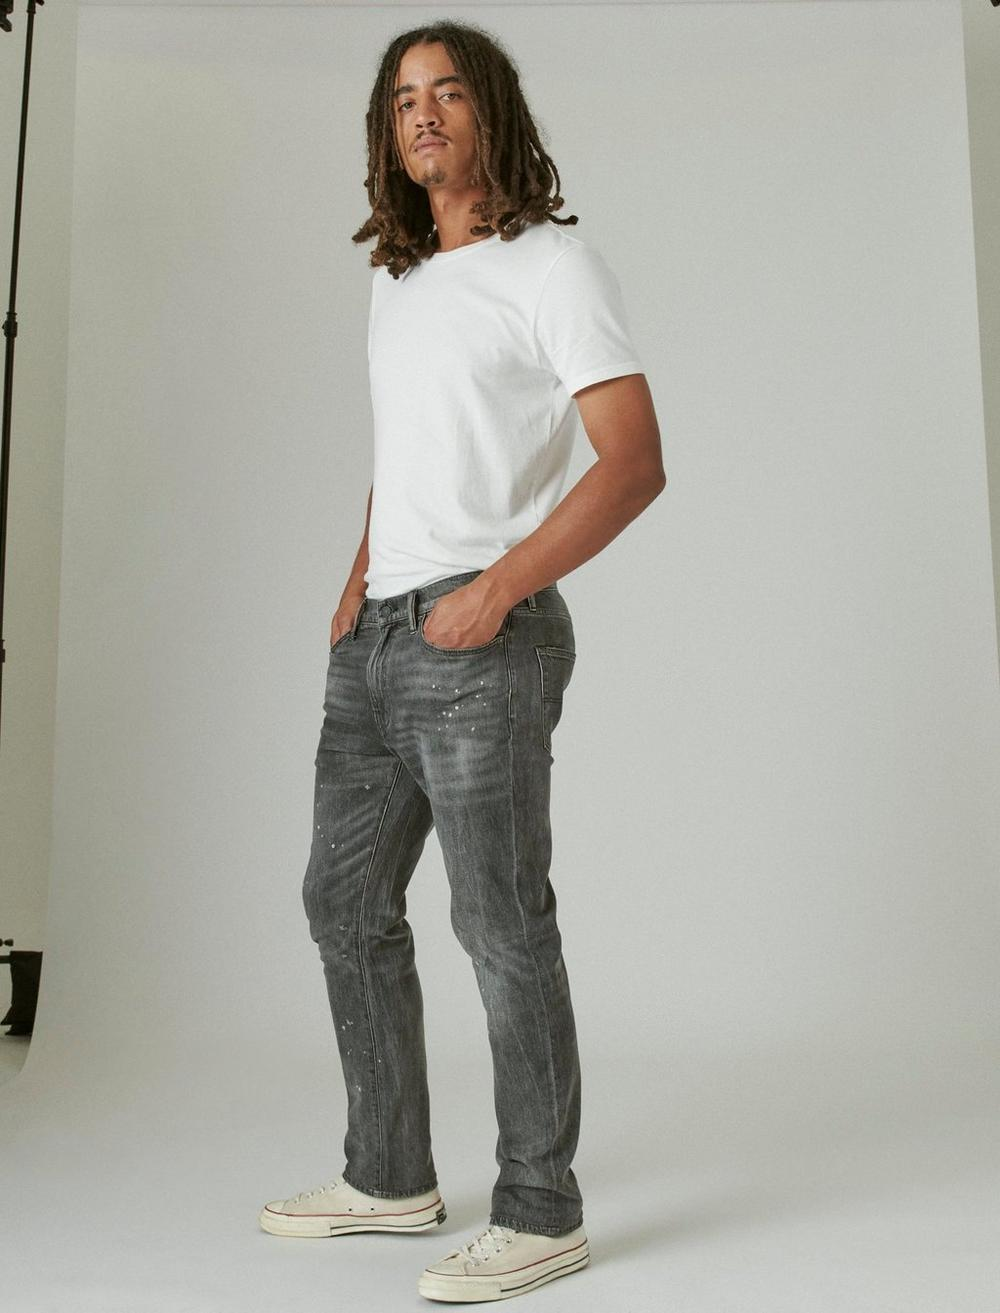 410 ATHLETIC STRAIGHT JEAN, image 2